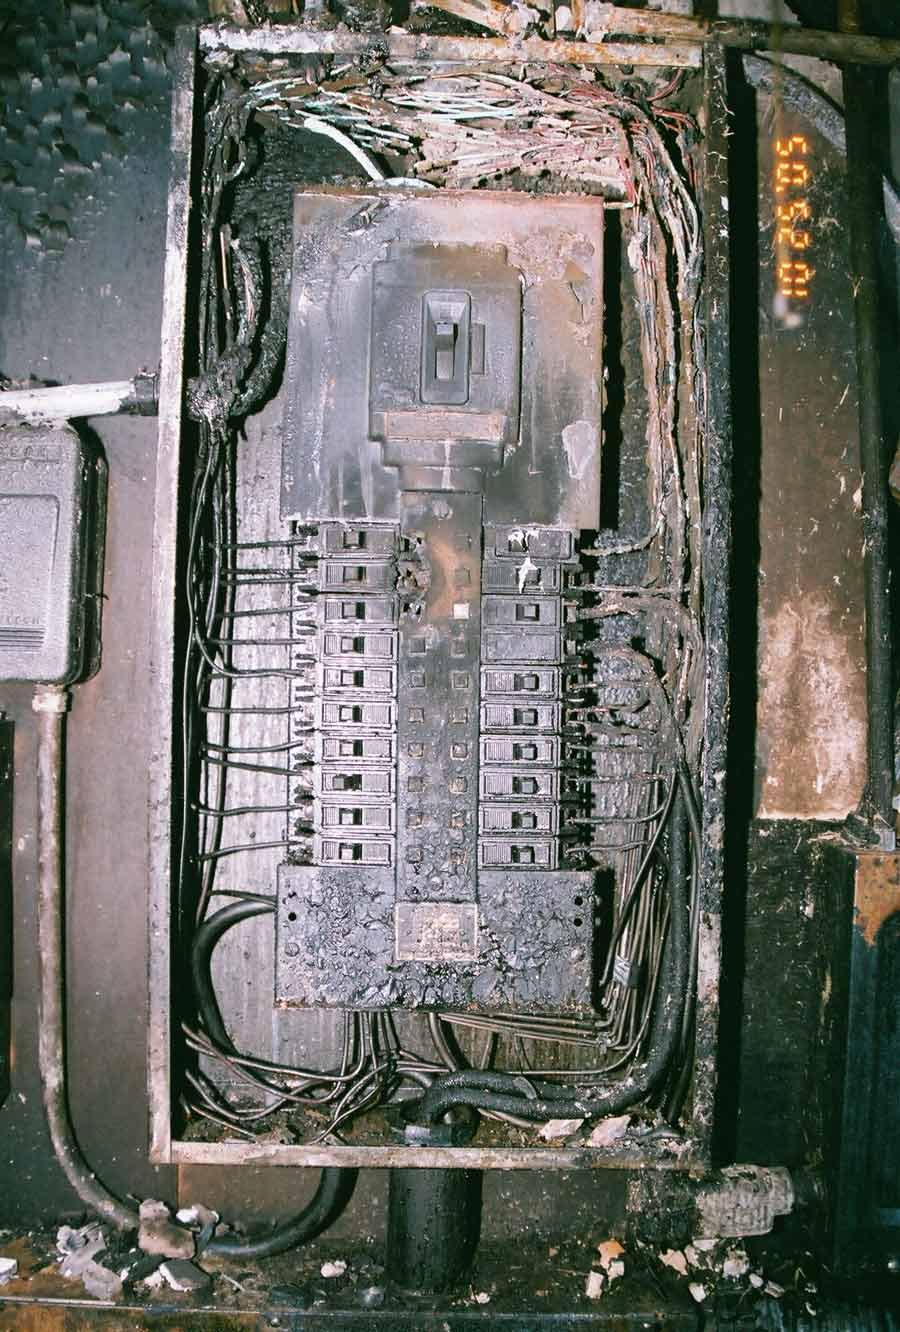 Electrical Distribution Panels Circuit Breaker Fires Wiring An Panel Severe Arcing In Box